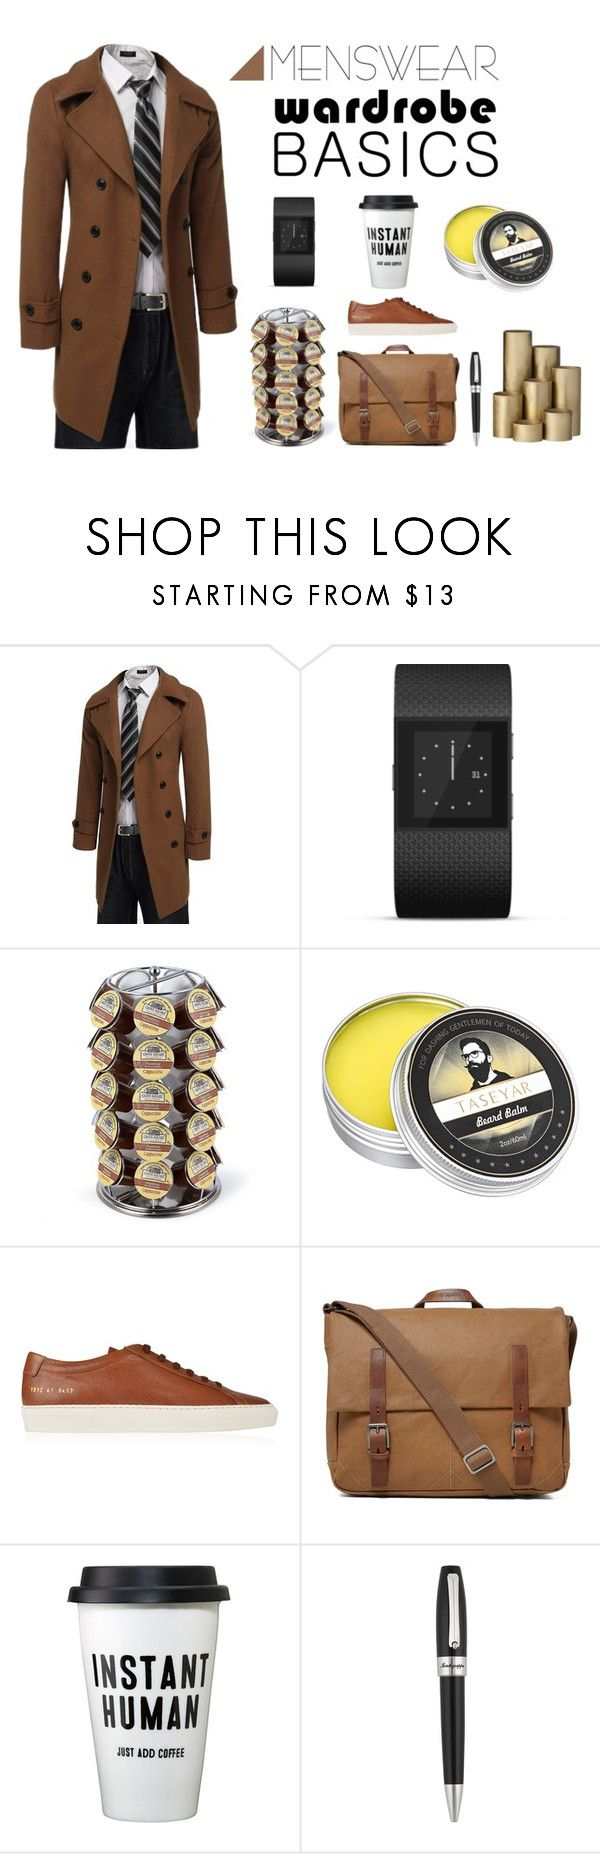 """""""Men's Wear"""" by ioakleaf on Polyvore featuring beauty, Fitbit, Keurig, Common Projects, Ally Capellino, Montegrappa and ferm LIVING"""